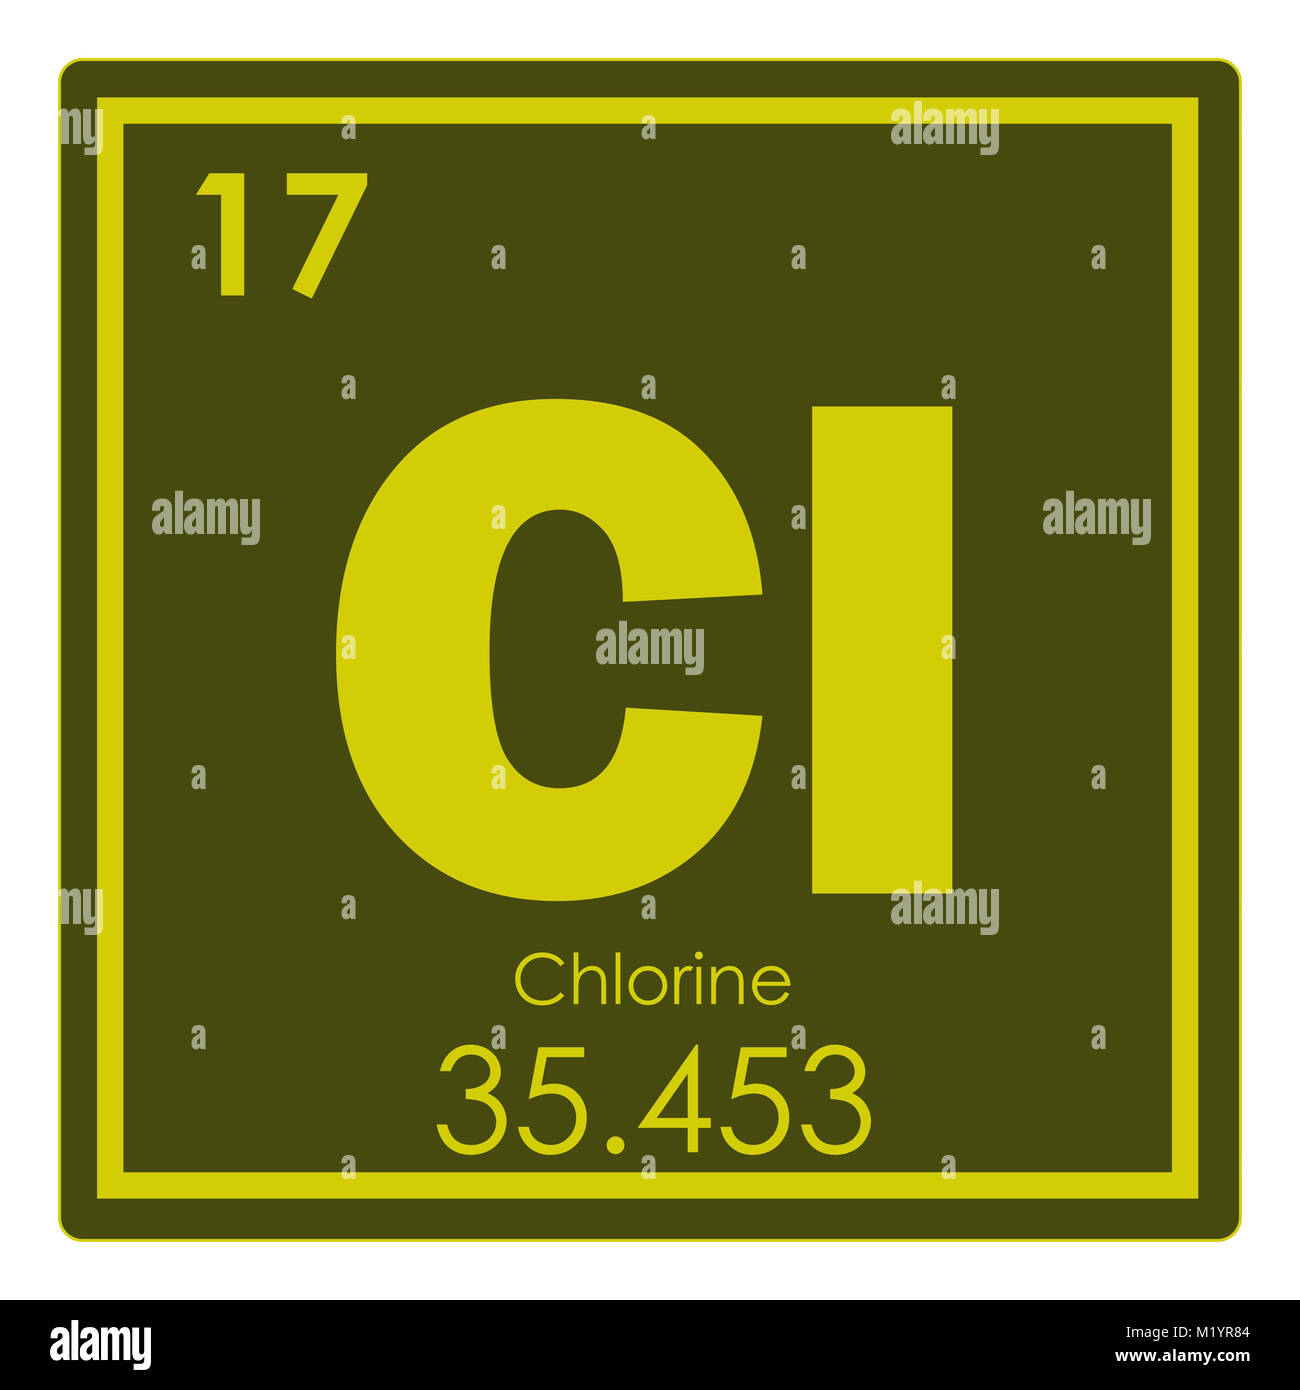 Periodic table symbol for chlorine image collections periodic chlorine chemical element periodic table science symbol stock photo urtaz